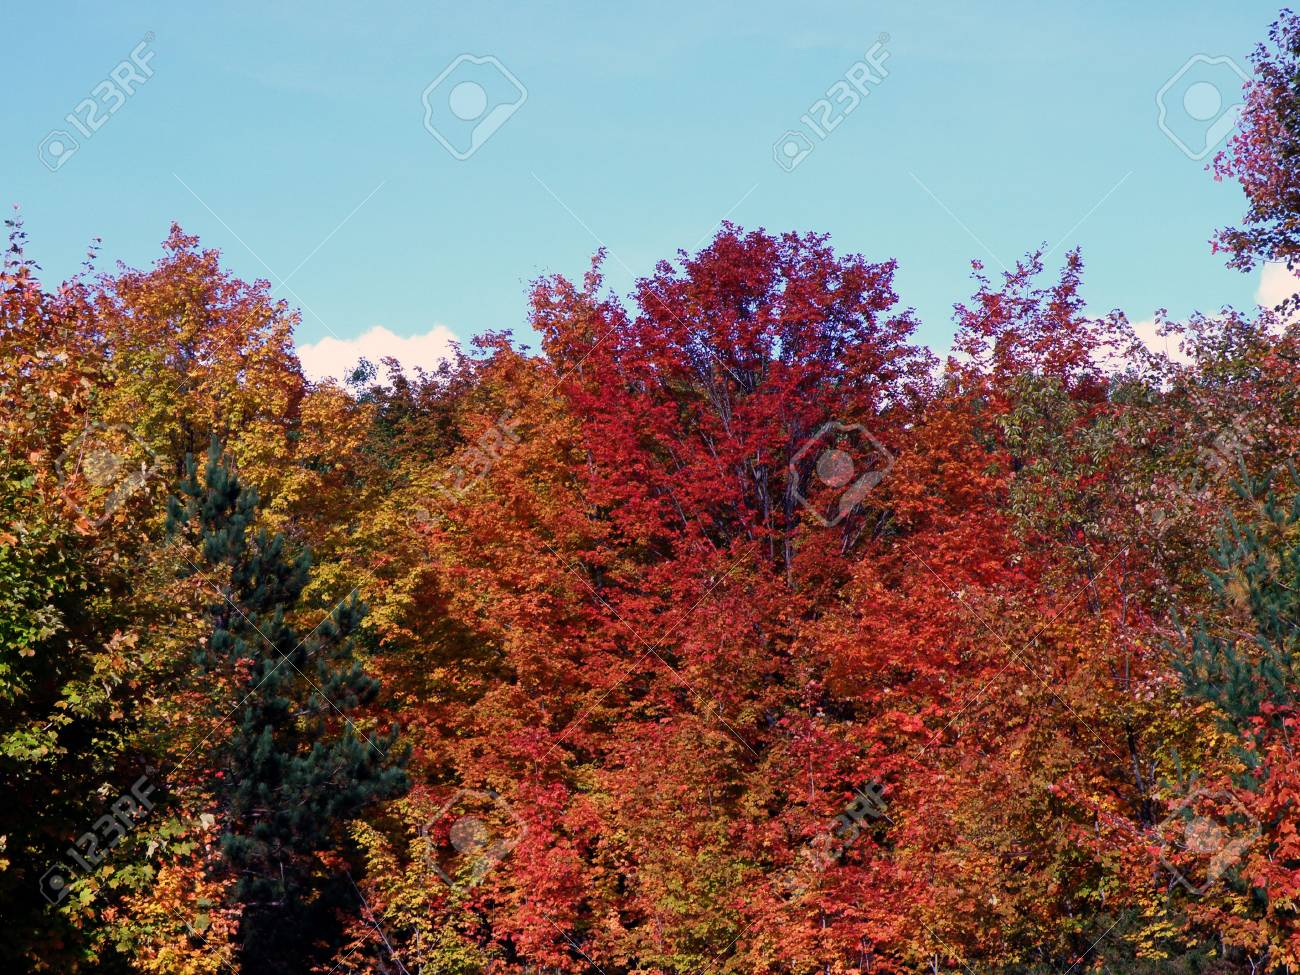 Bright leaves on a clear sunny day. Colorful autumn changes at their peak. Stock Photo - 5710776